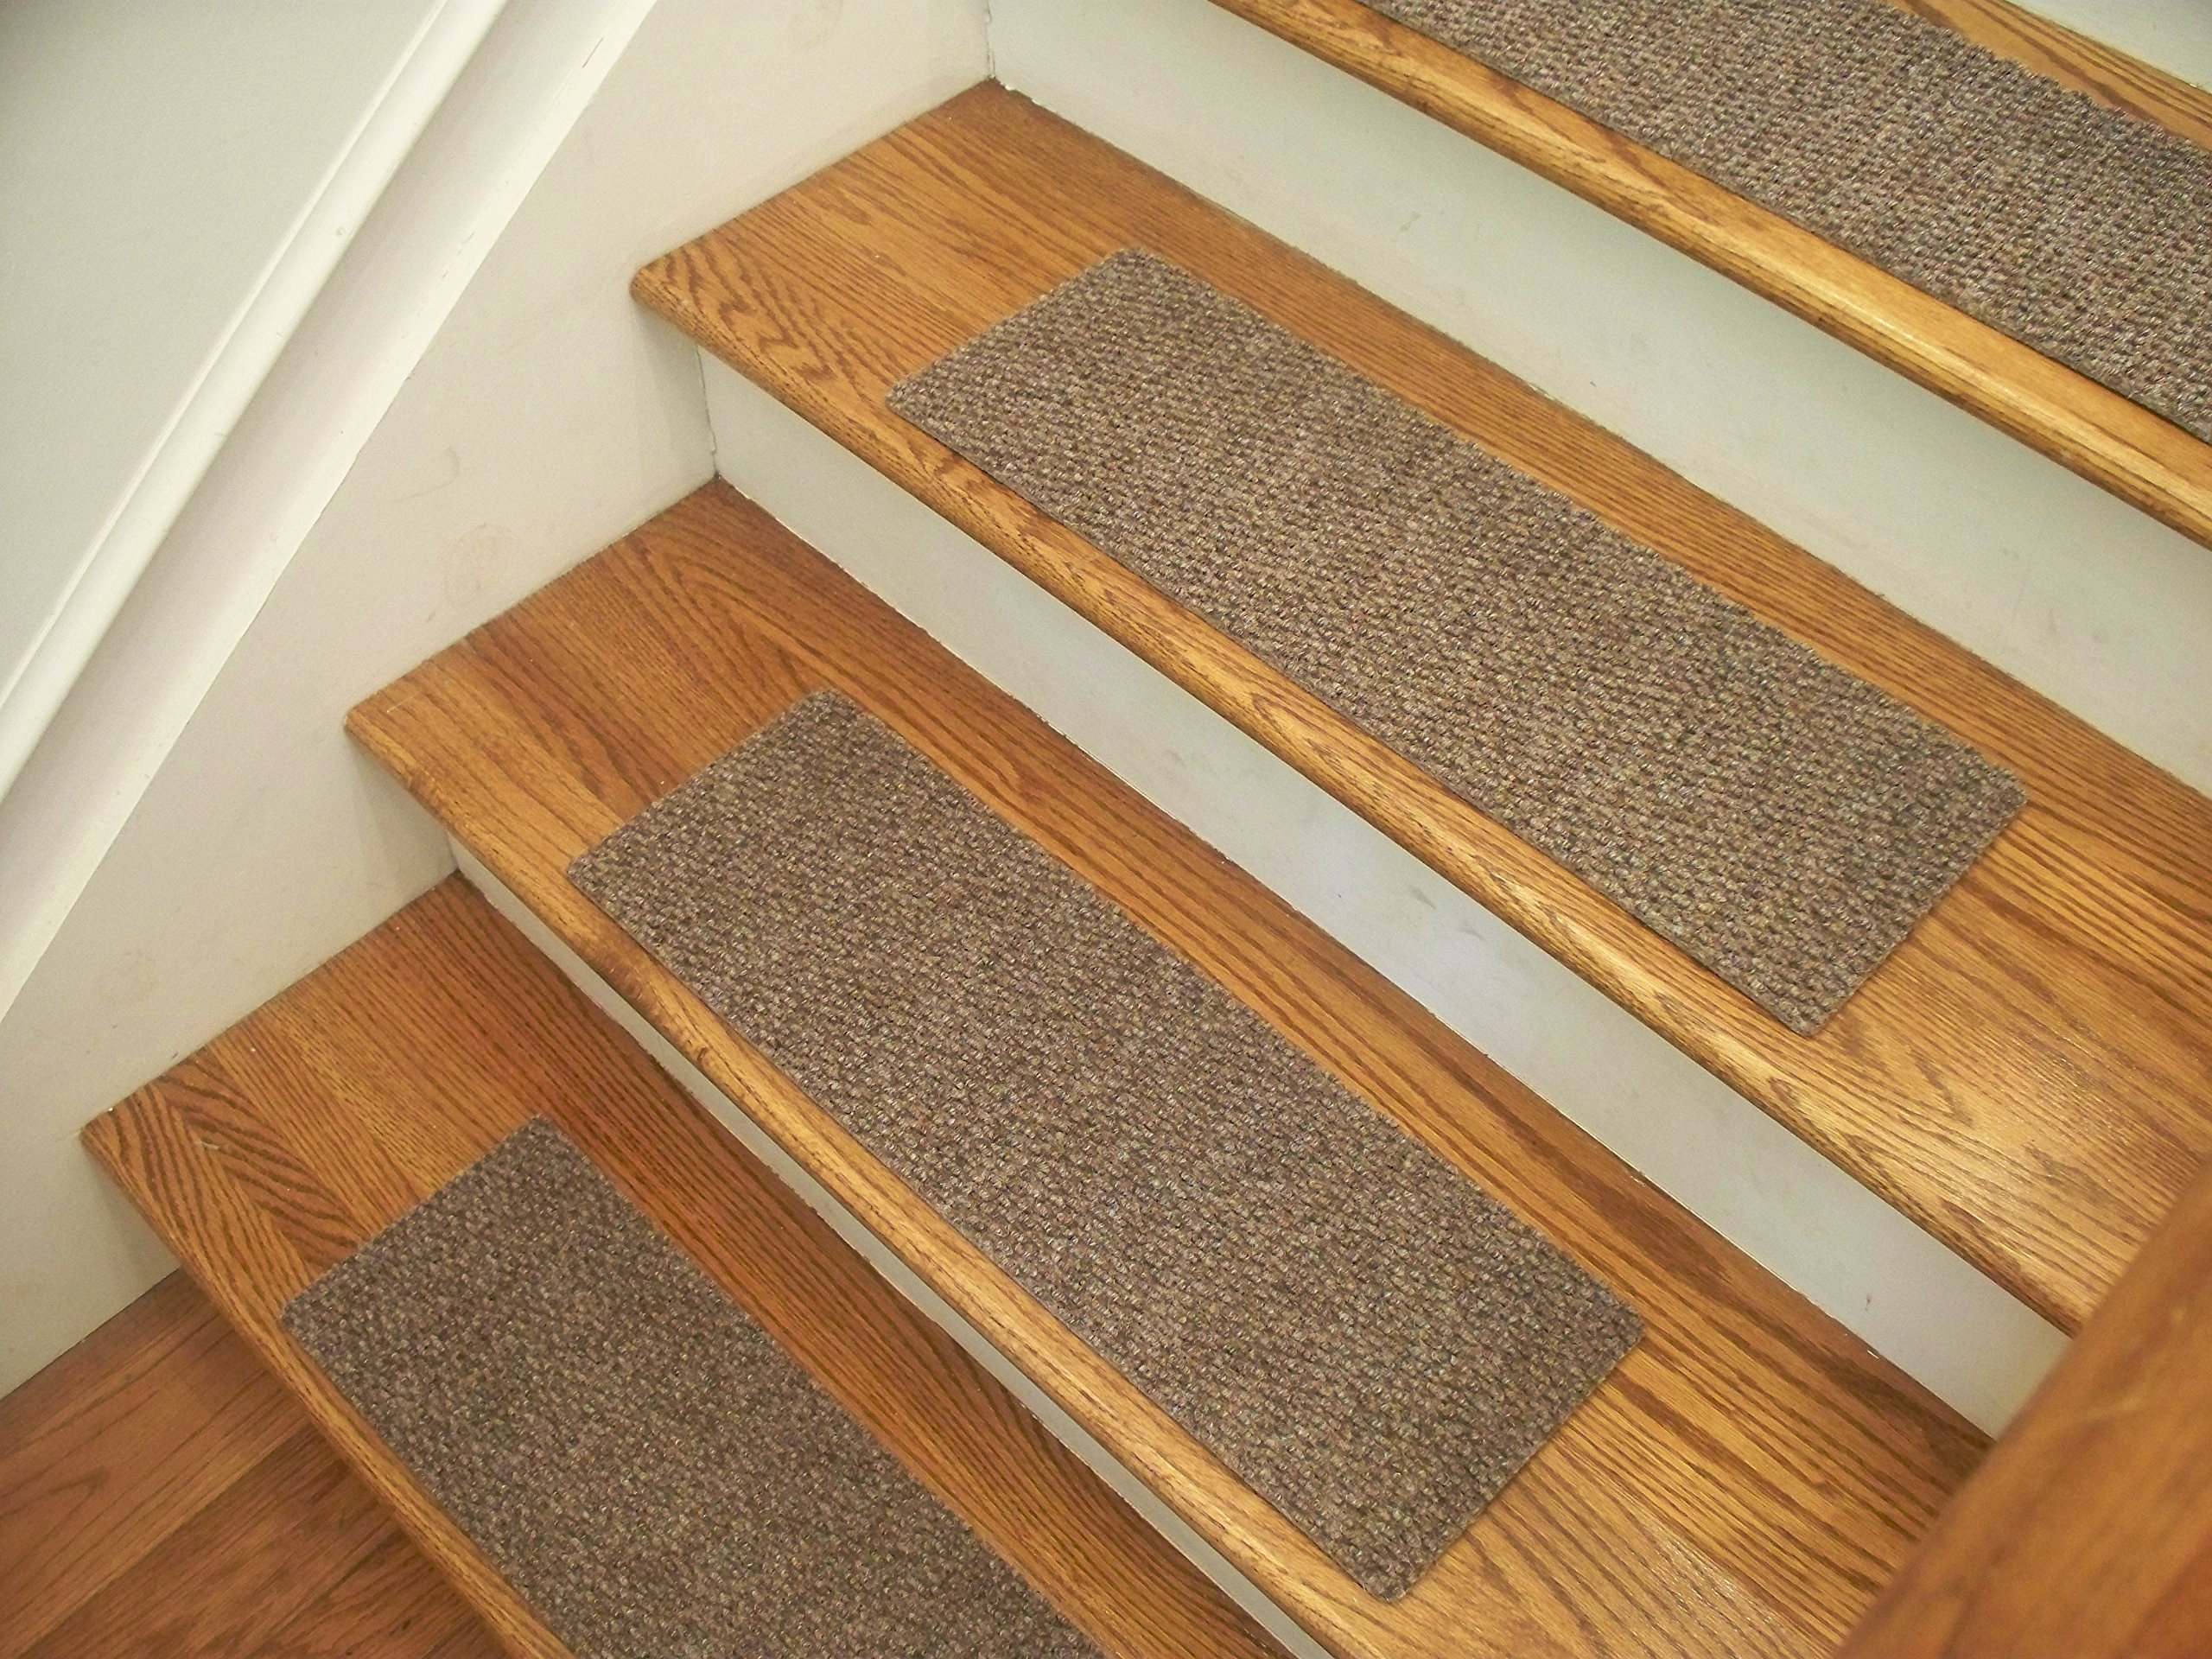 Essential Carpet Stair Treads - Style: Berber - Color: Beige Gray - Size: 24'' x 8'' - Set of 13 by Essential Specialty Products